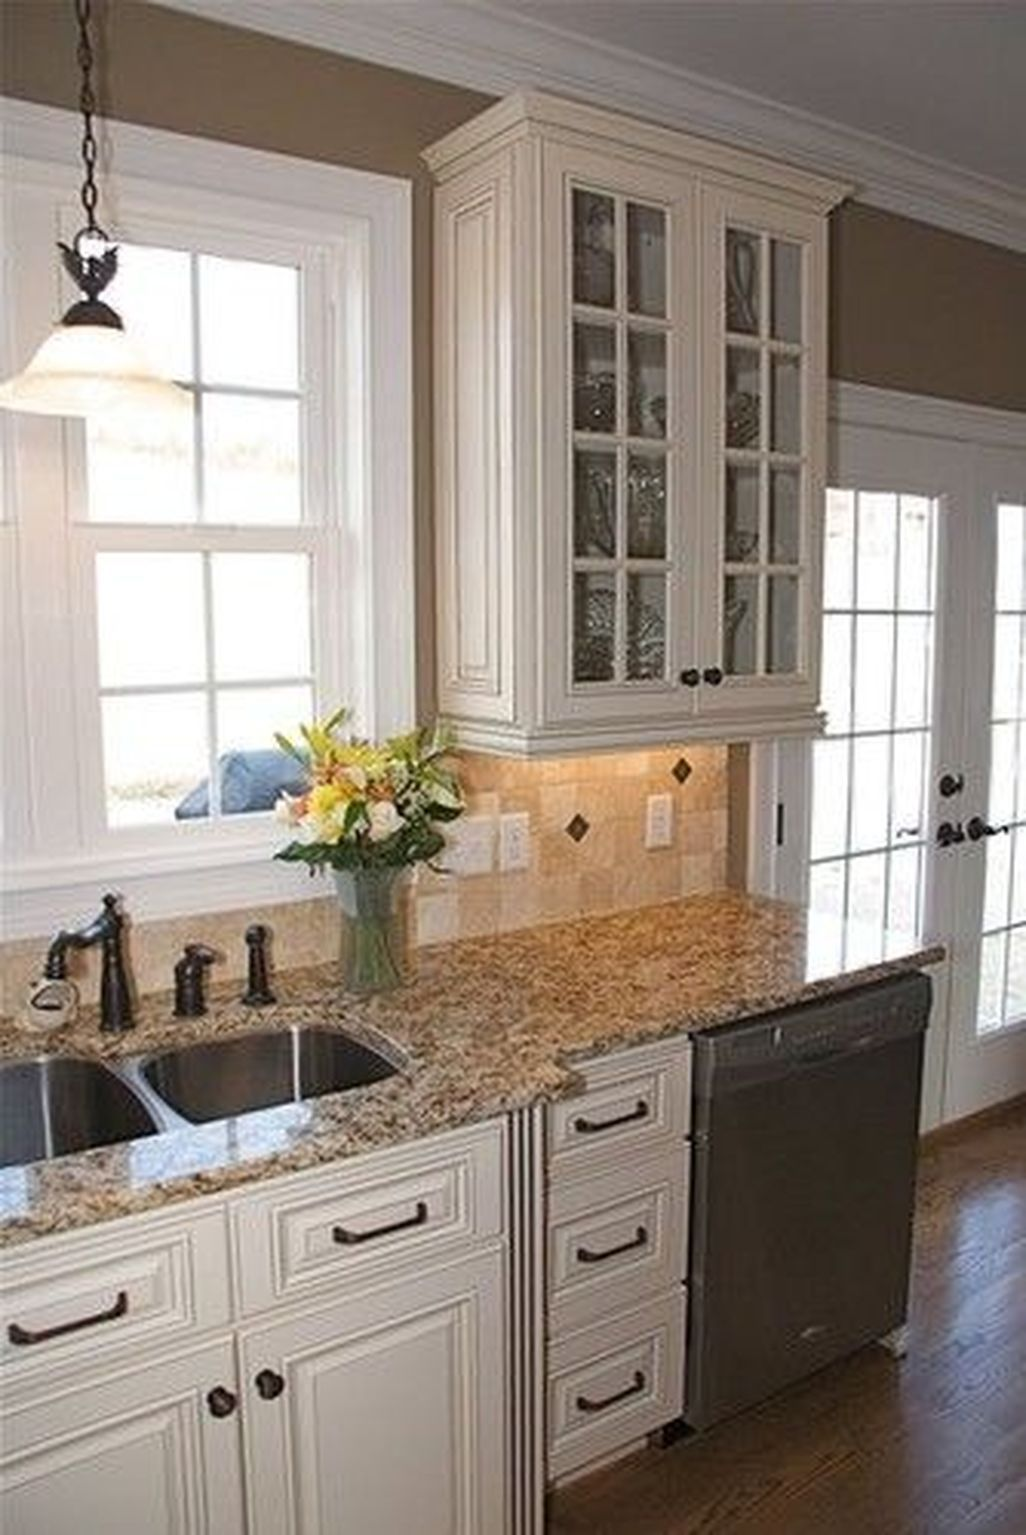 42 Amazing Traditional Kitchen Ideas #traditionalkitchen